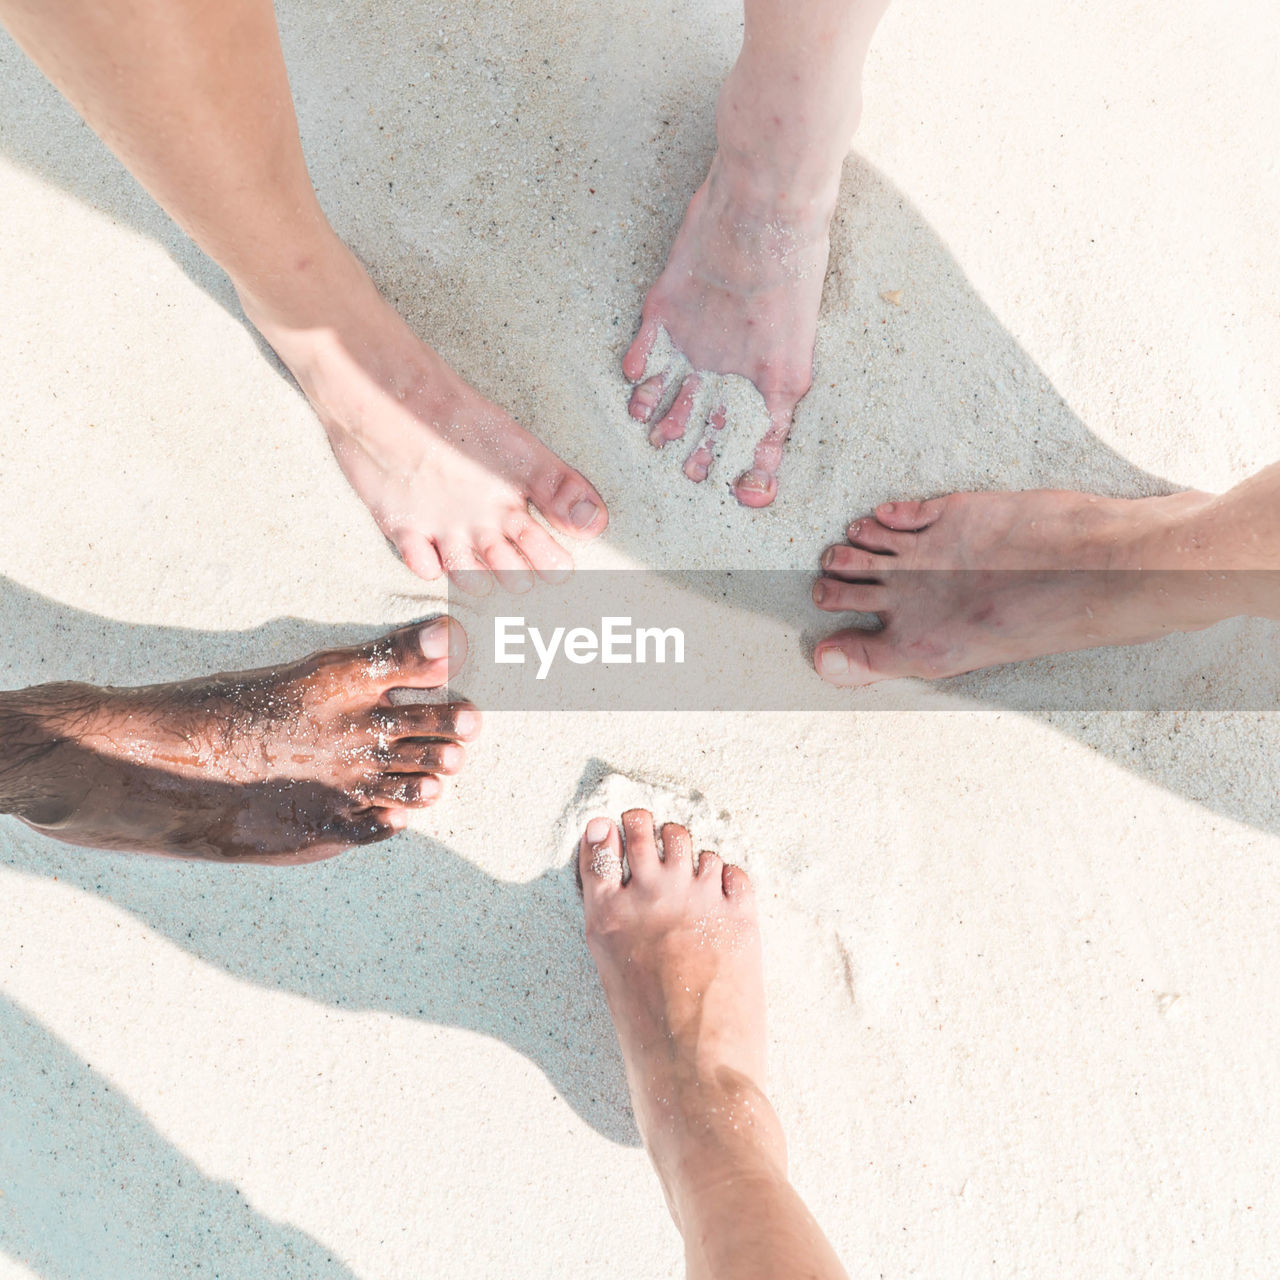 human body part, beach, land, sand, togetherness, body part, nature, sunlight, high angle view, barefoot, day, human leg, low section, standing, people, leisure activity, group of people, shadow, real people, vacations, human foot, outdoors, positive emotion, human limb